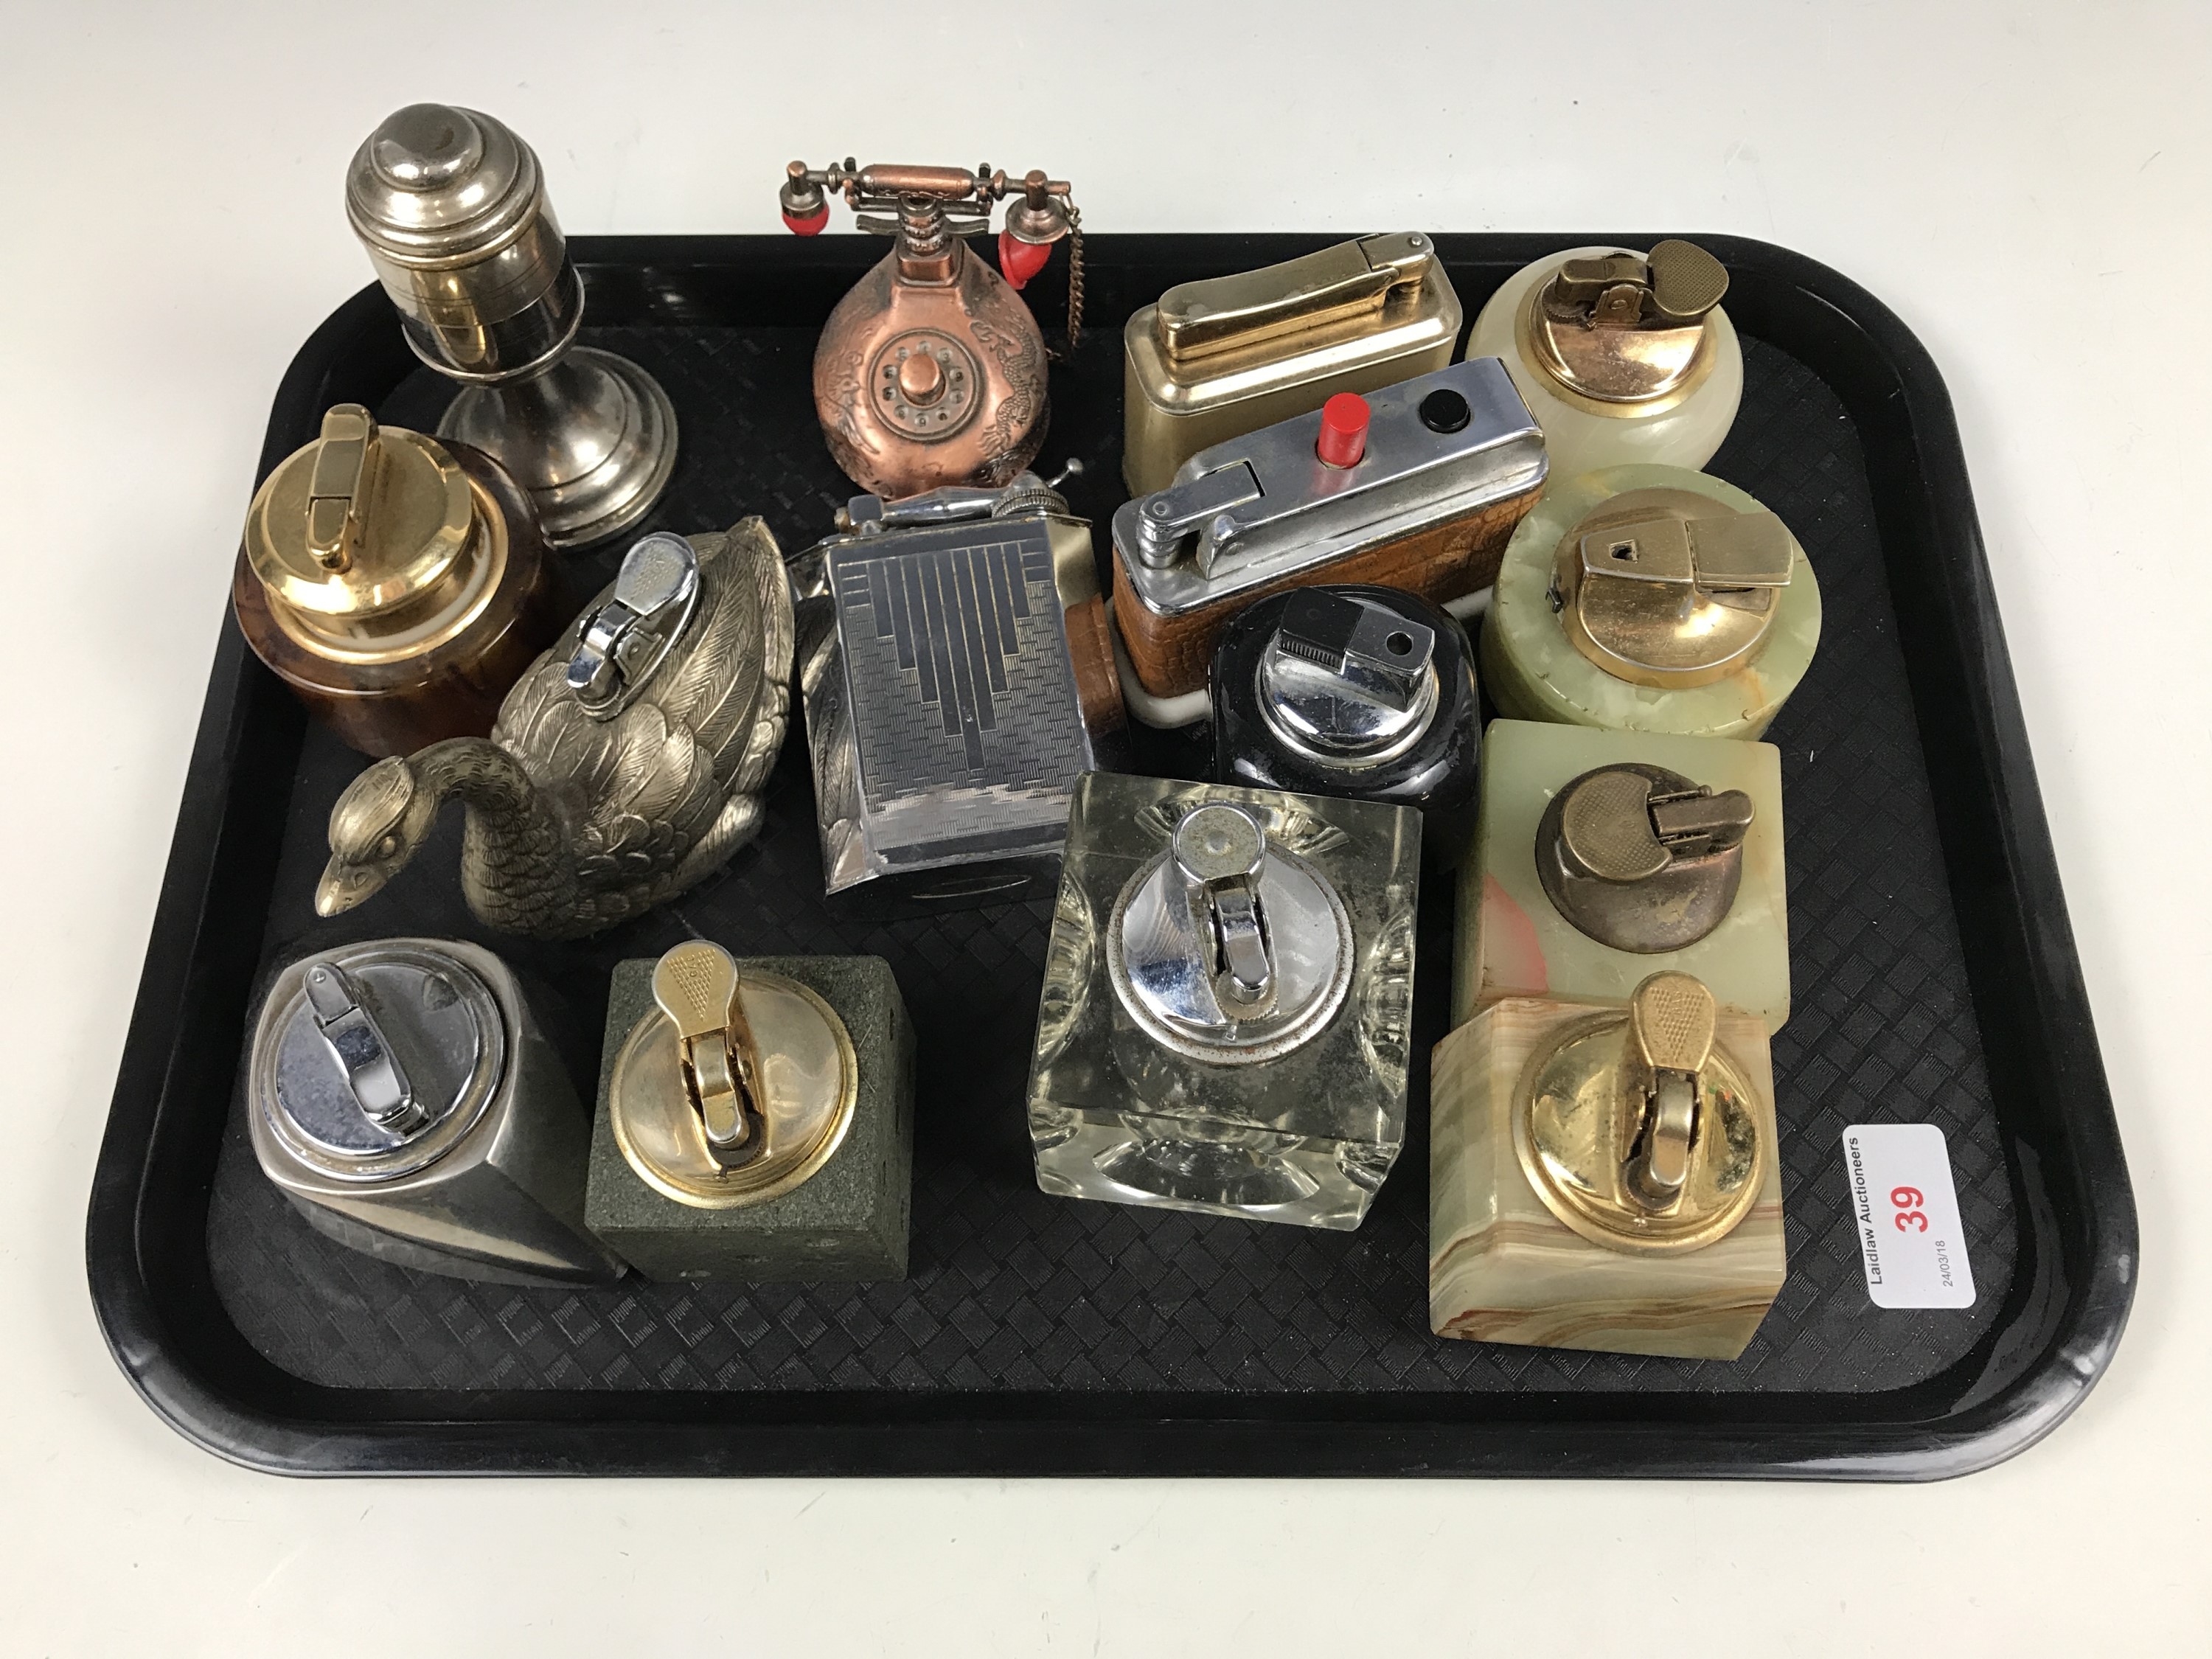 Lot 39 - A quantity of vintage novelty and other table lighters, including one modelled as a swan and other